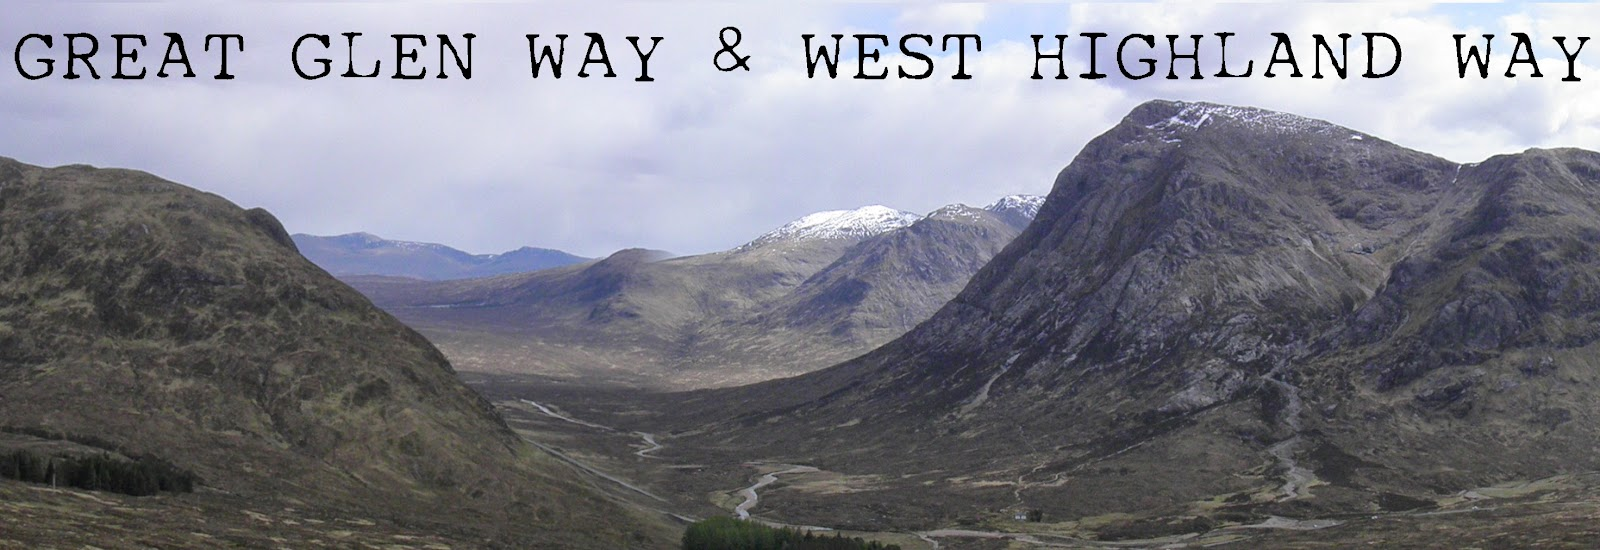 https://sites.google.com/site/tombrucecycling/adventures/great-glen-way-west-highland-way